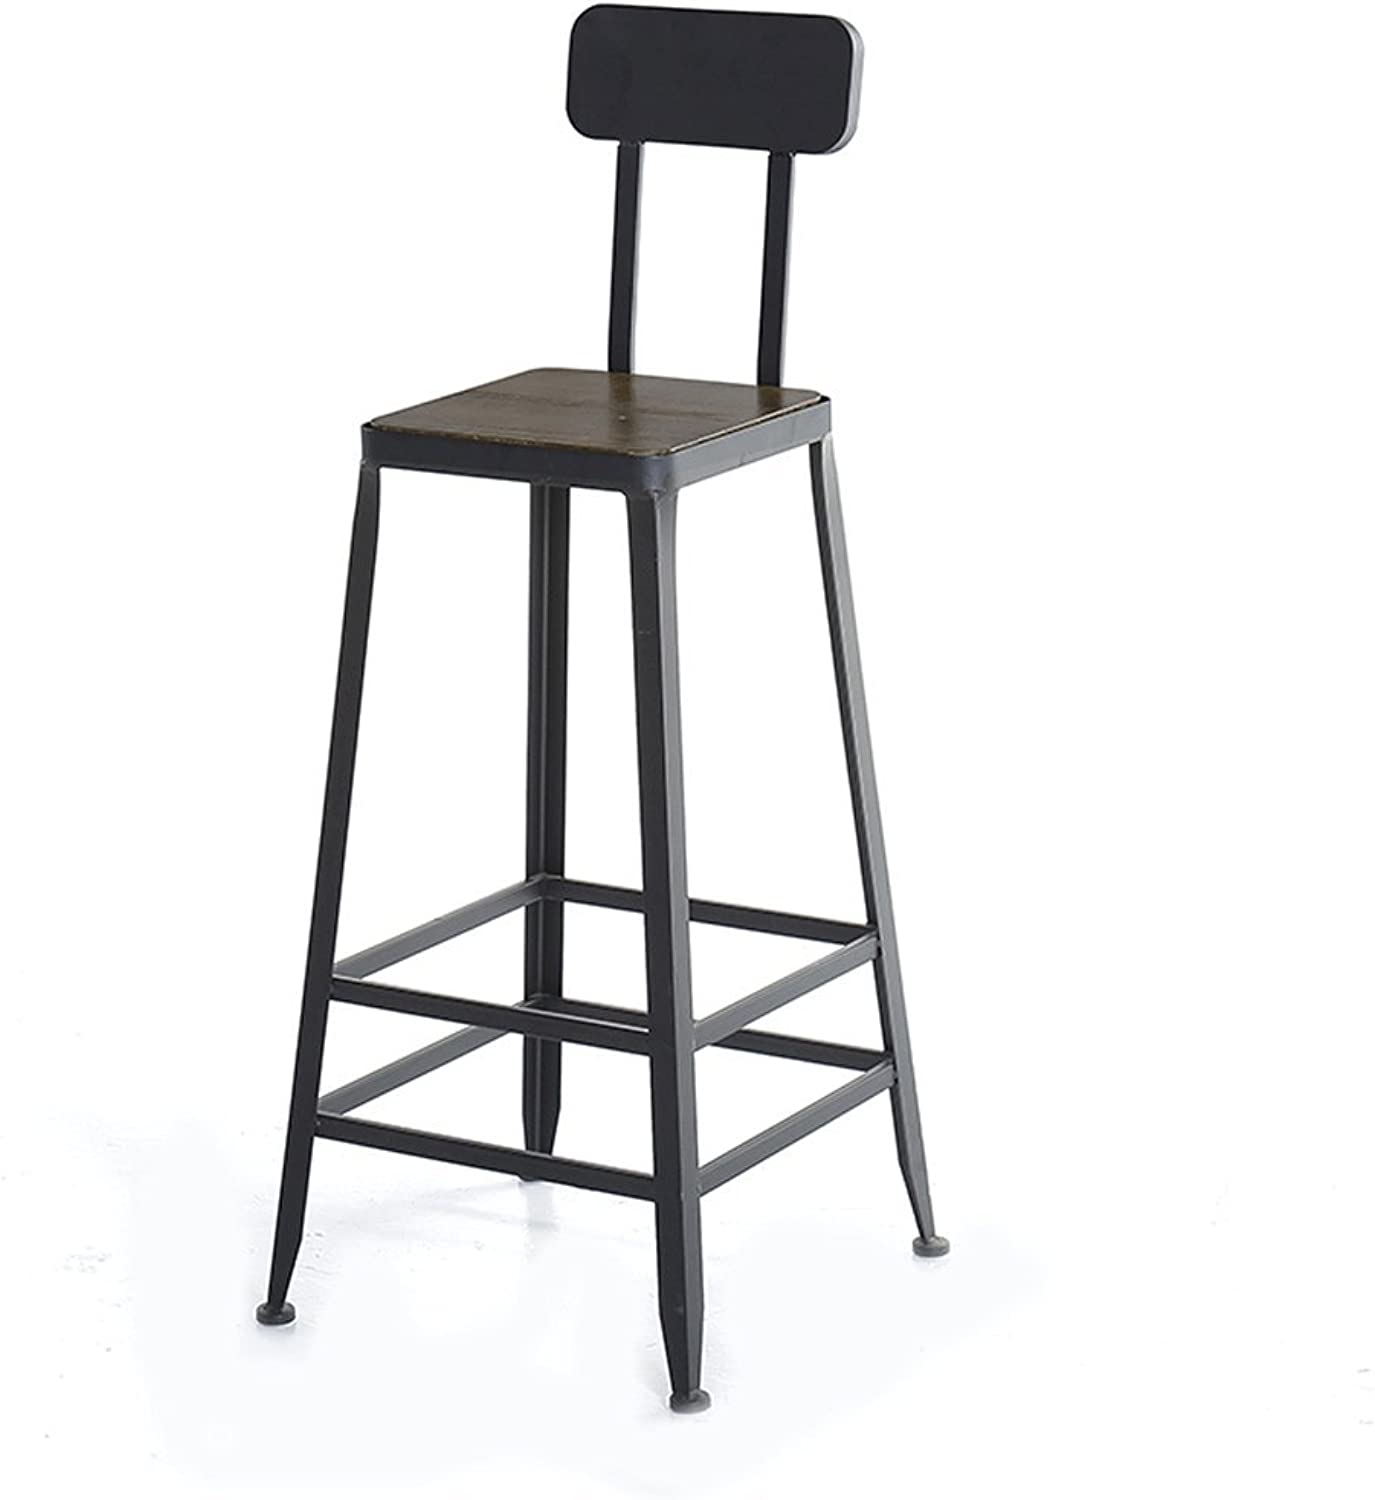 Barstool Bar Stool with Backrest Stool Iron Solid Wood Stool Cafe Stool High Stool Modern Minimalist Stool (color   Square, Size   Upholstered)